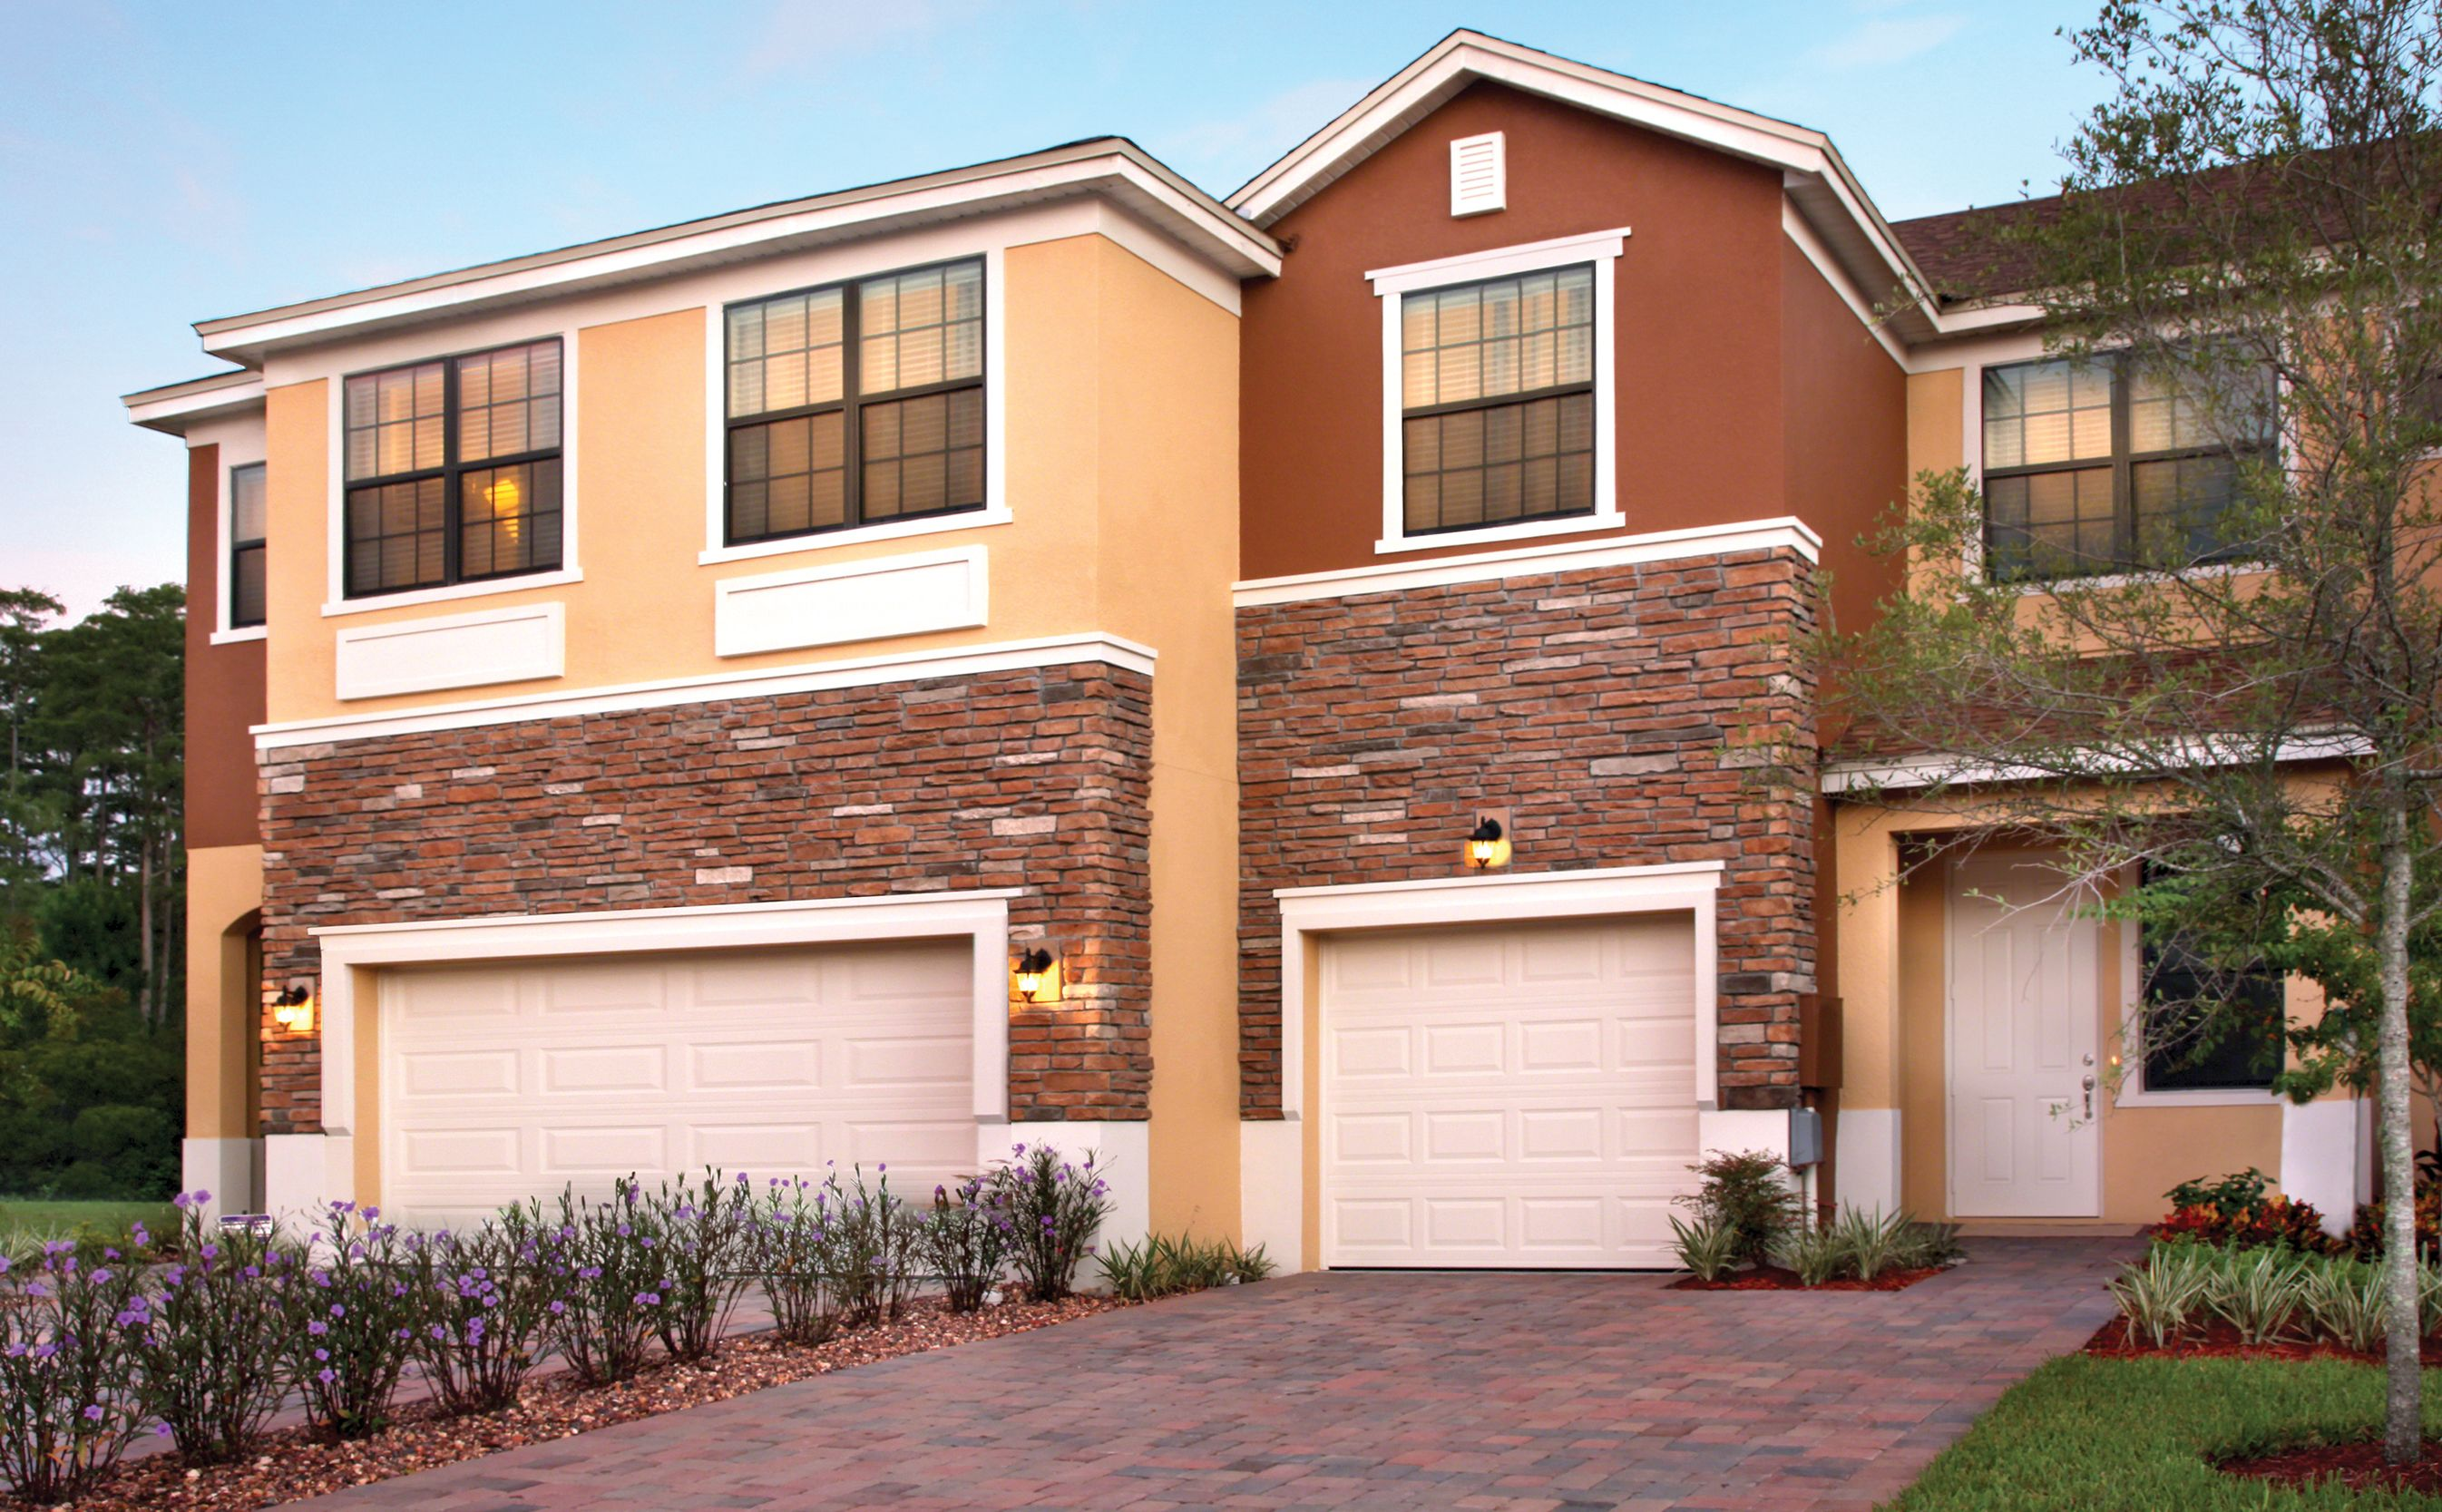 3 Bedroom Houses For Rent In Orlando 32837 Apartments For